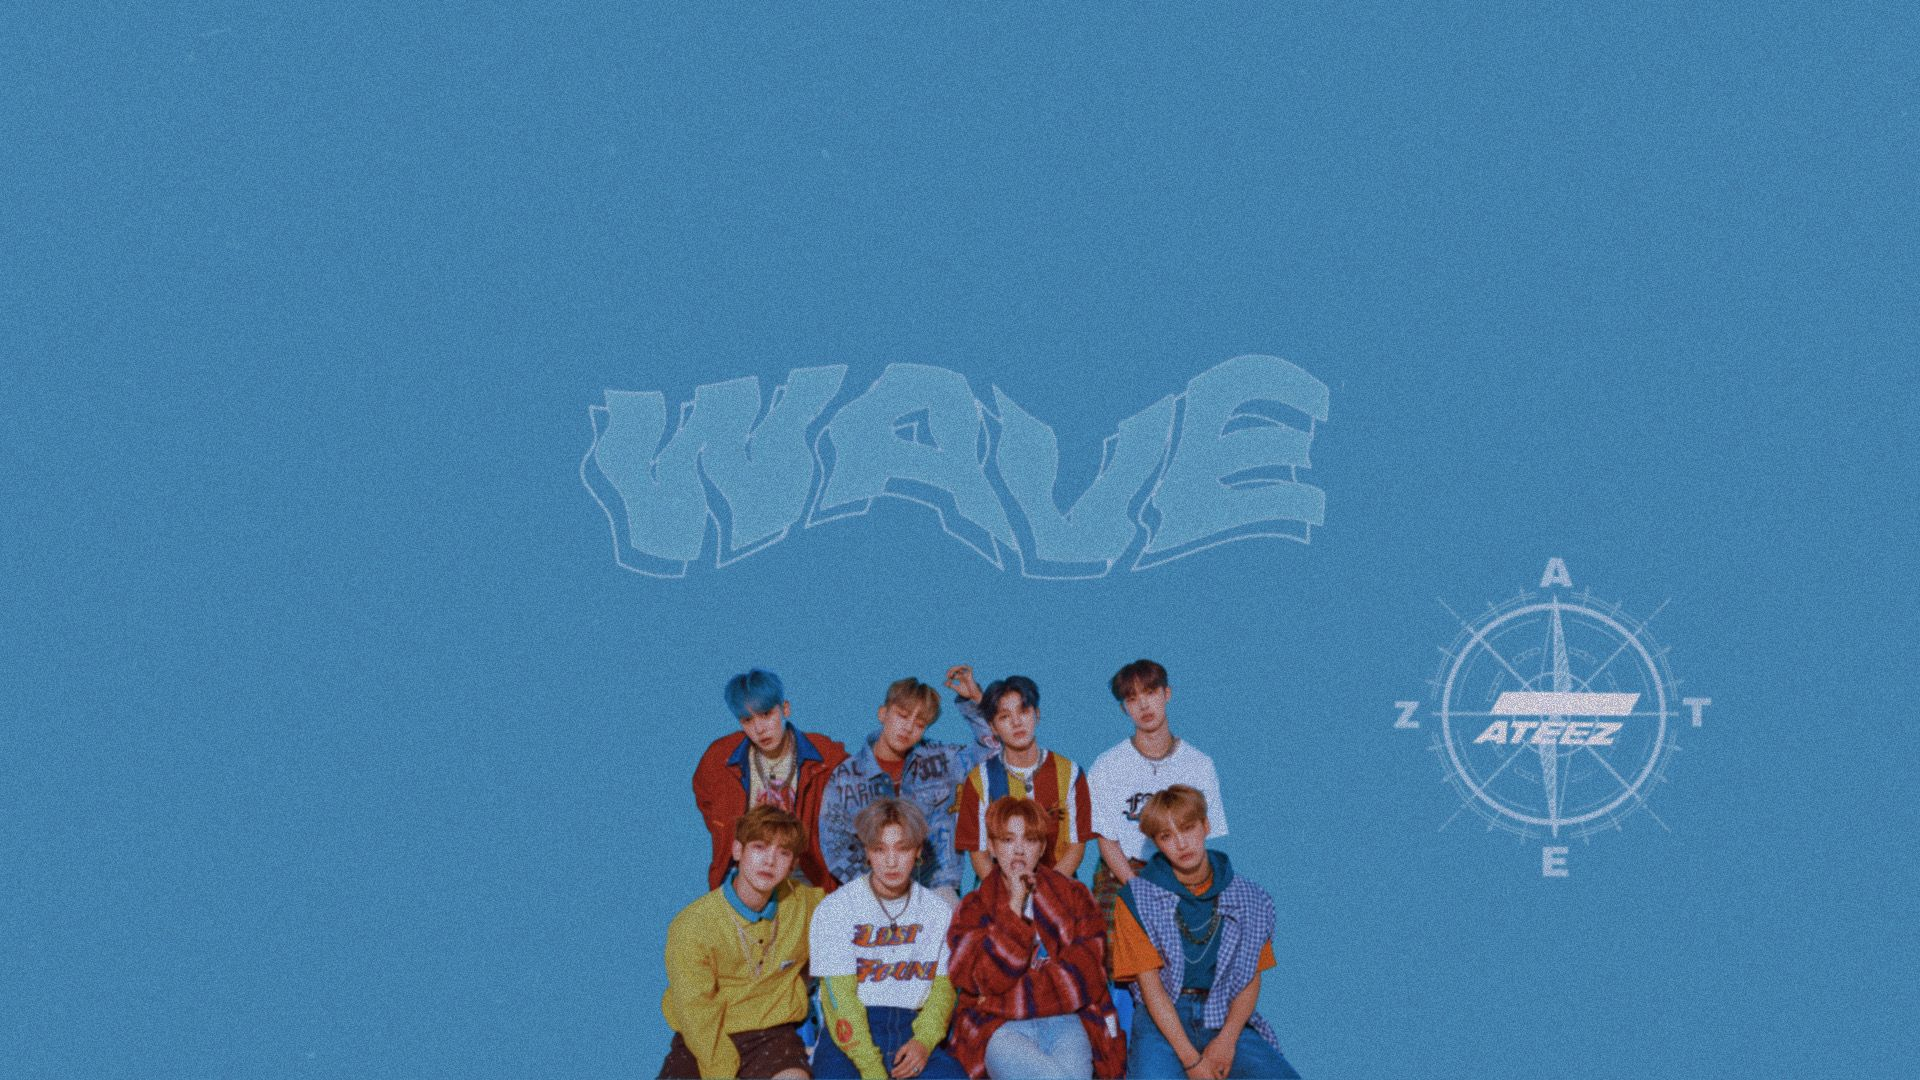 Pin By Salisa Colmenares On Ateez Wallpapers Laptop Wallpaper Laptop Wallpaper Desktop Wallpapers Kpop Wallpaper